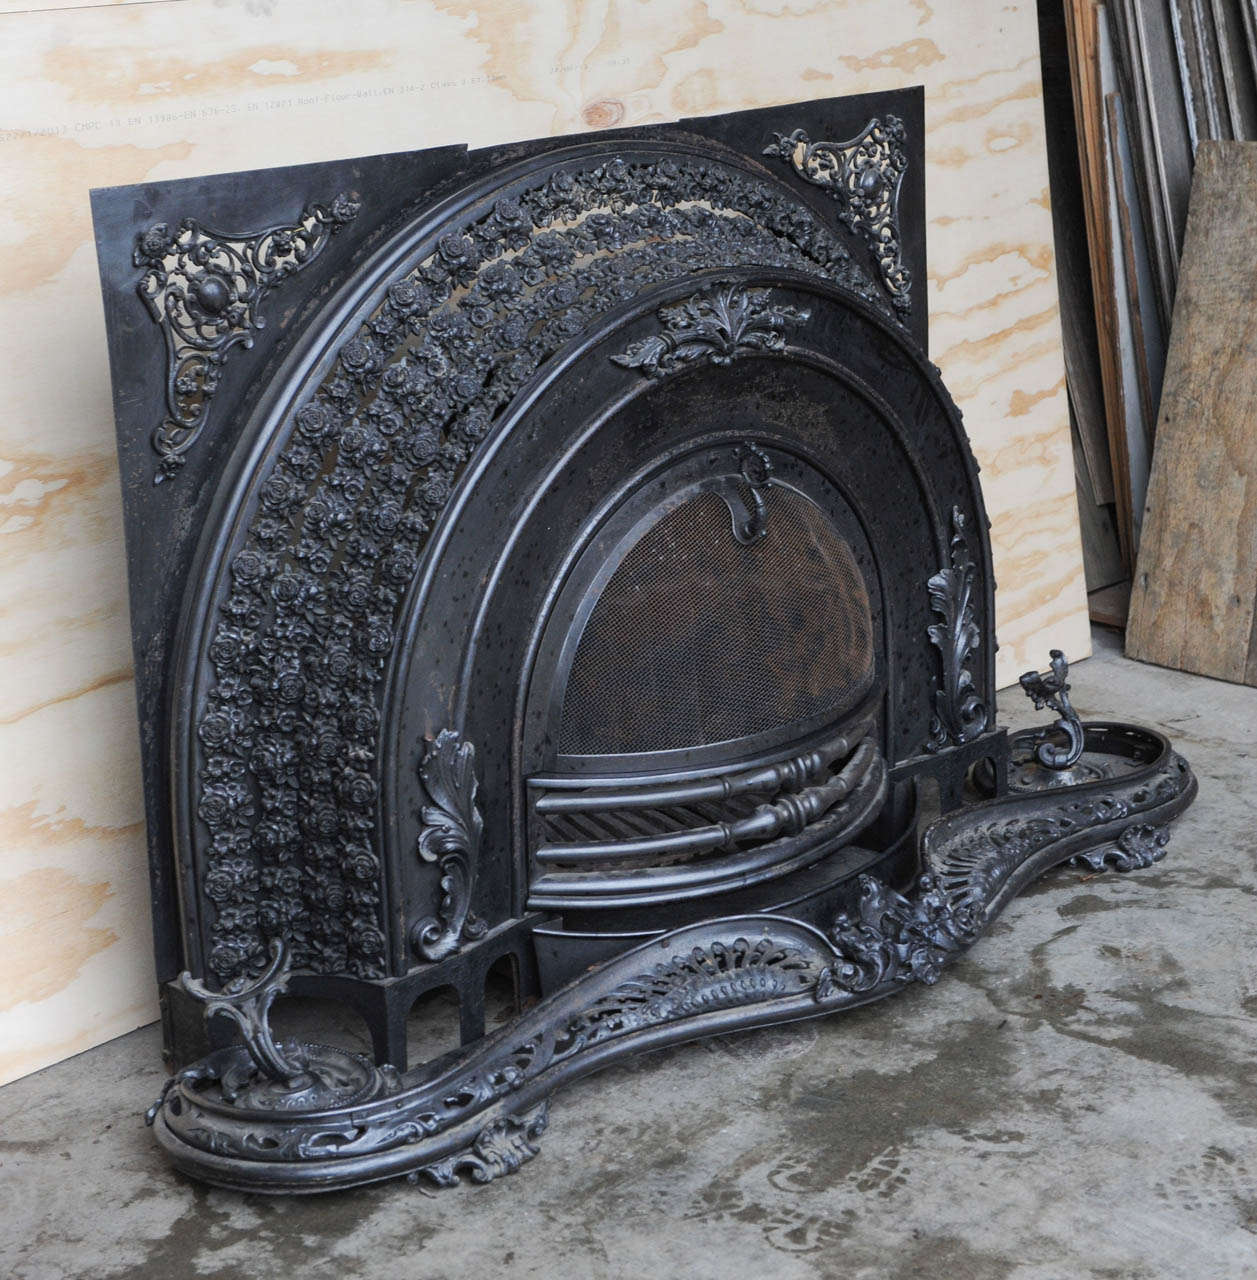 Arched shape, complete with it's original scrolled fender and crate insert. The wrought iron base with scrolled feet. Great Steampunk look. We bought it form a Amsterdam canalhouse, it could also work well in a modern environment.